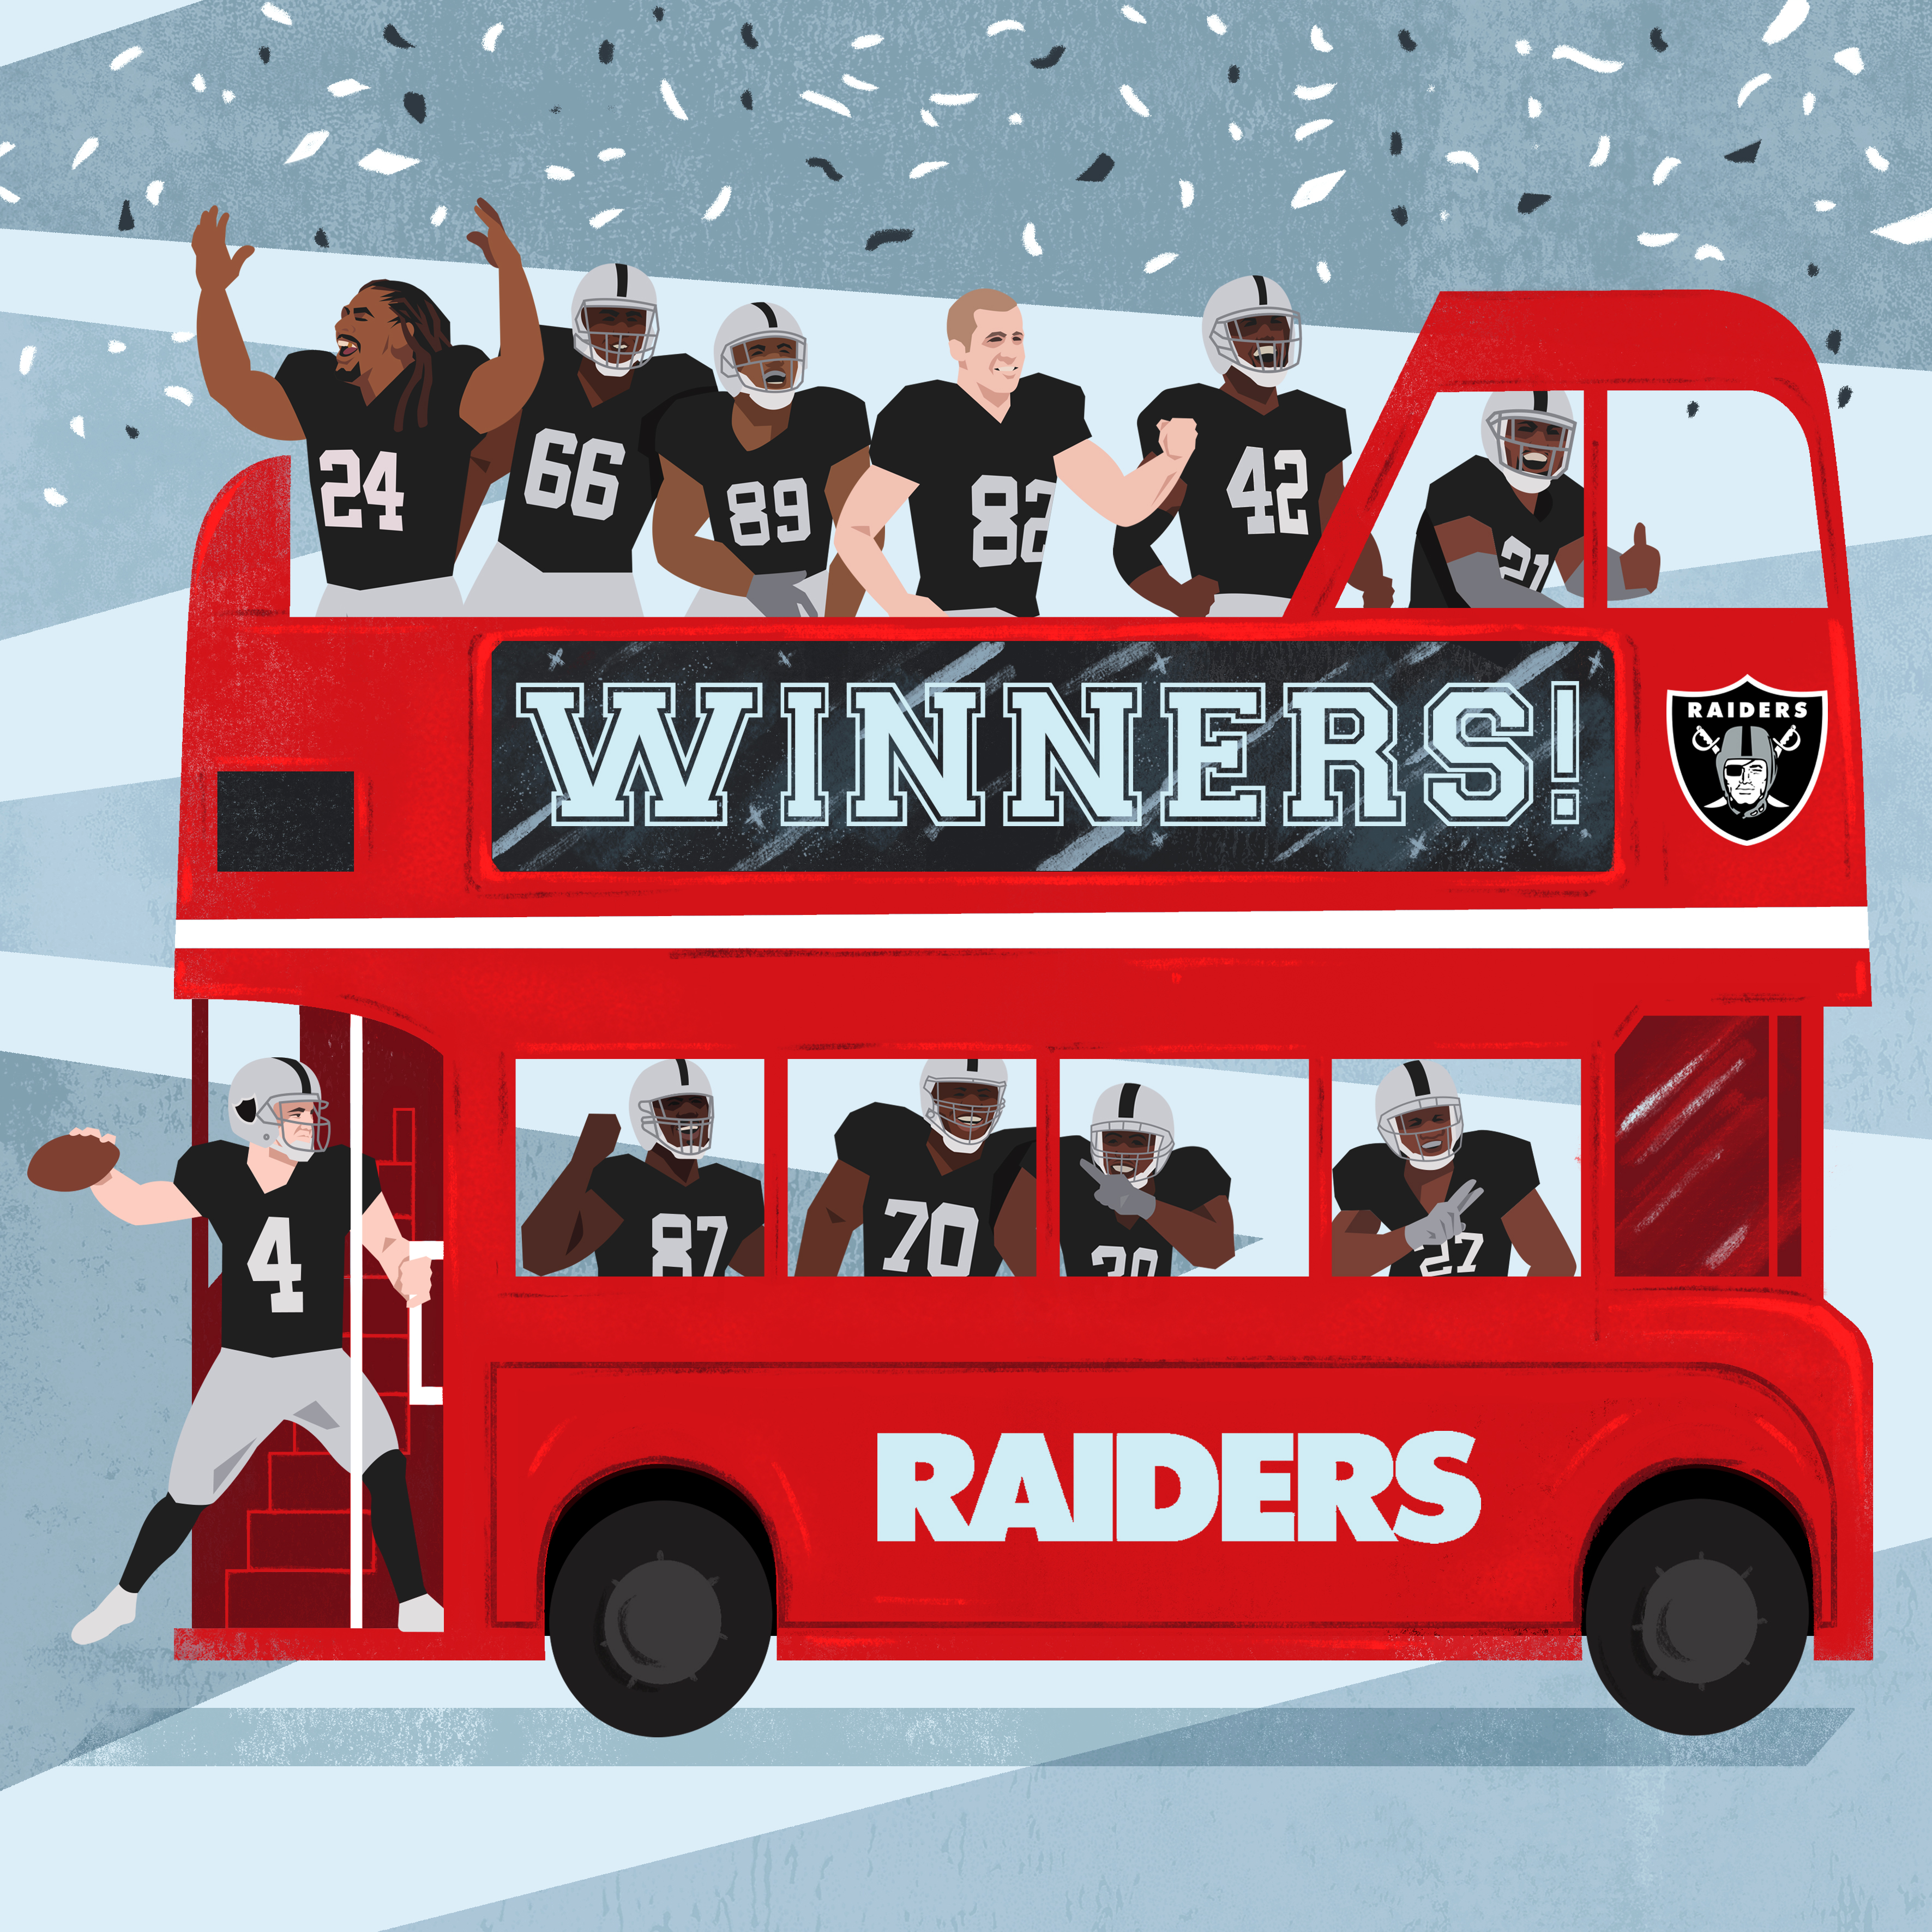 Raiders bus final